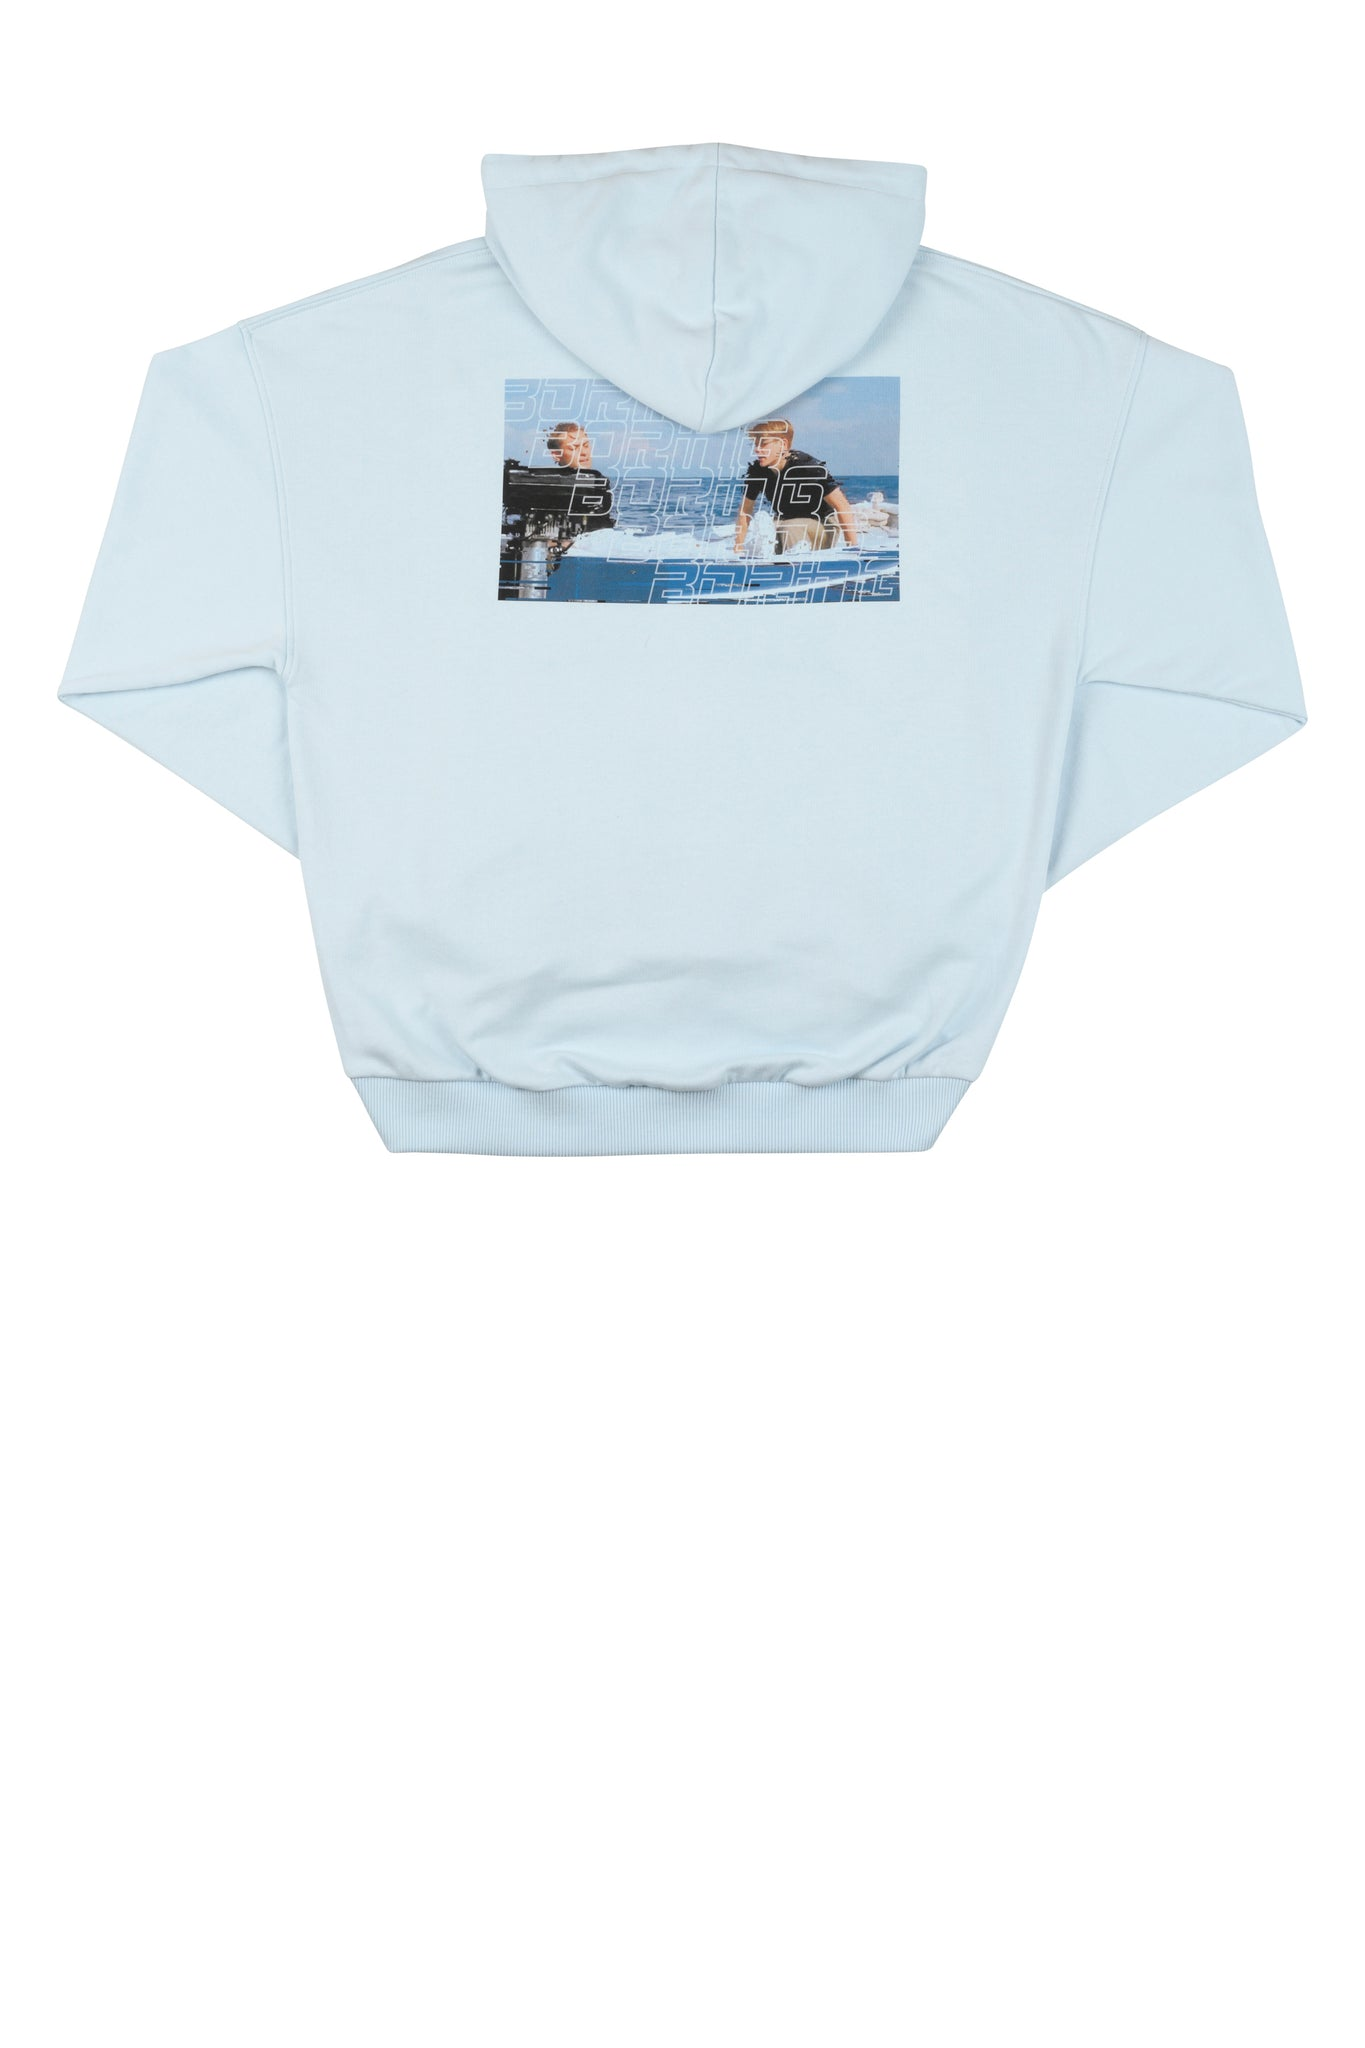 martin Asbjørn cropped blue hoodie with print for men and women